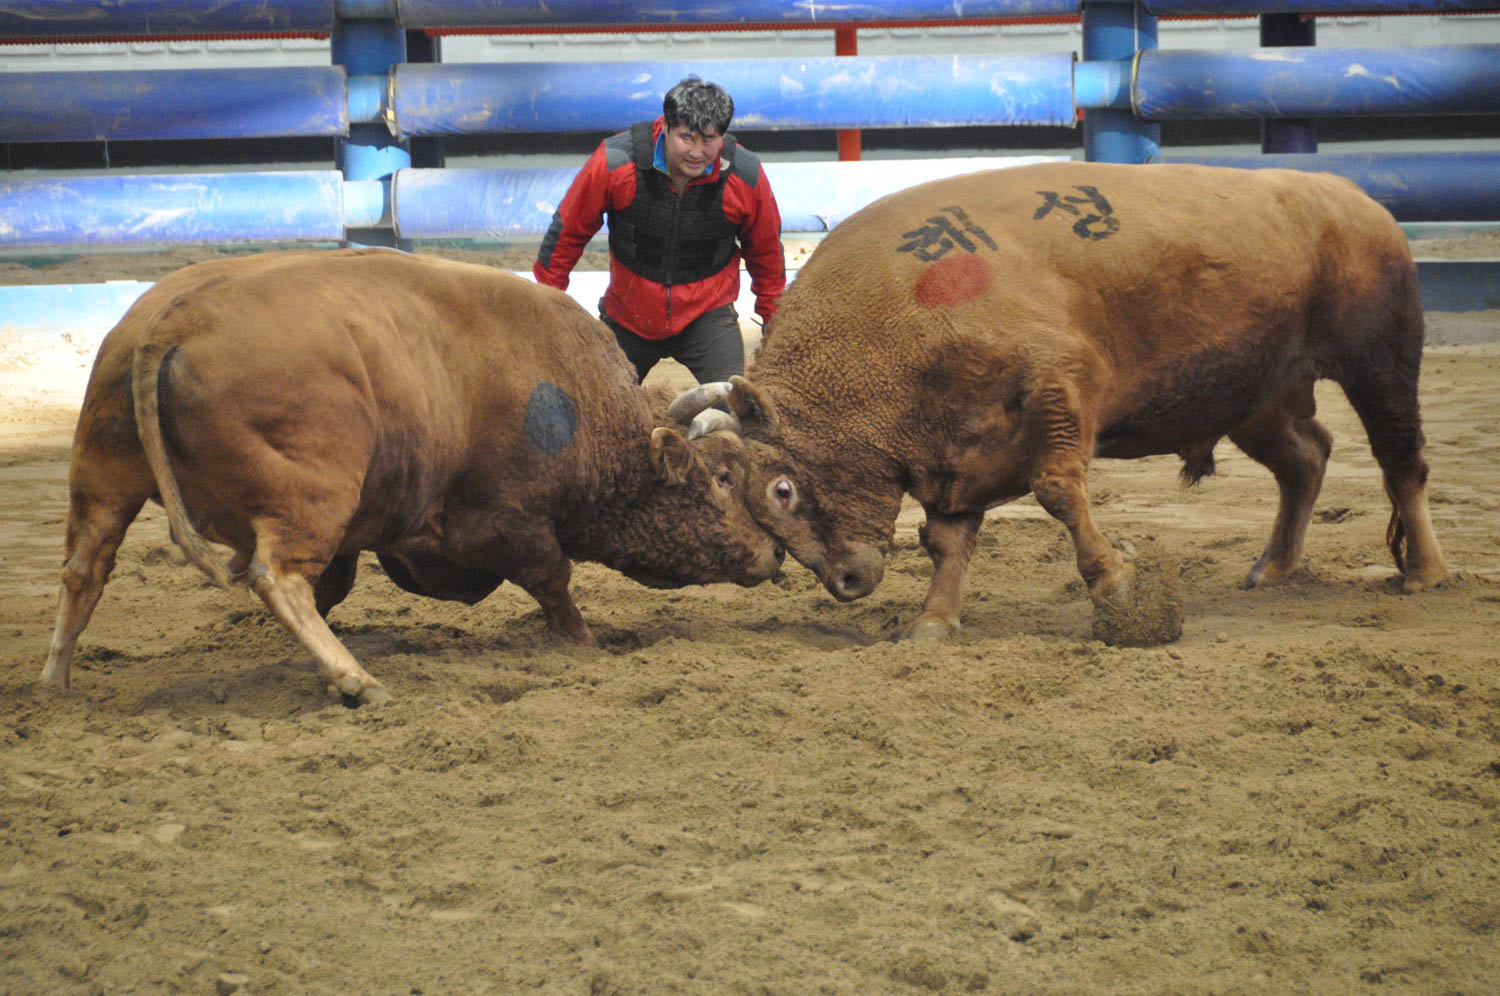 One of the matches ended just seconds after it began, yet the last pair of bulls was fighting for more than twenty minutes.